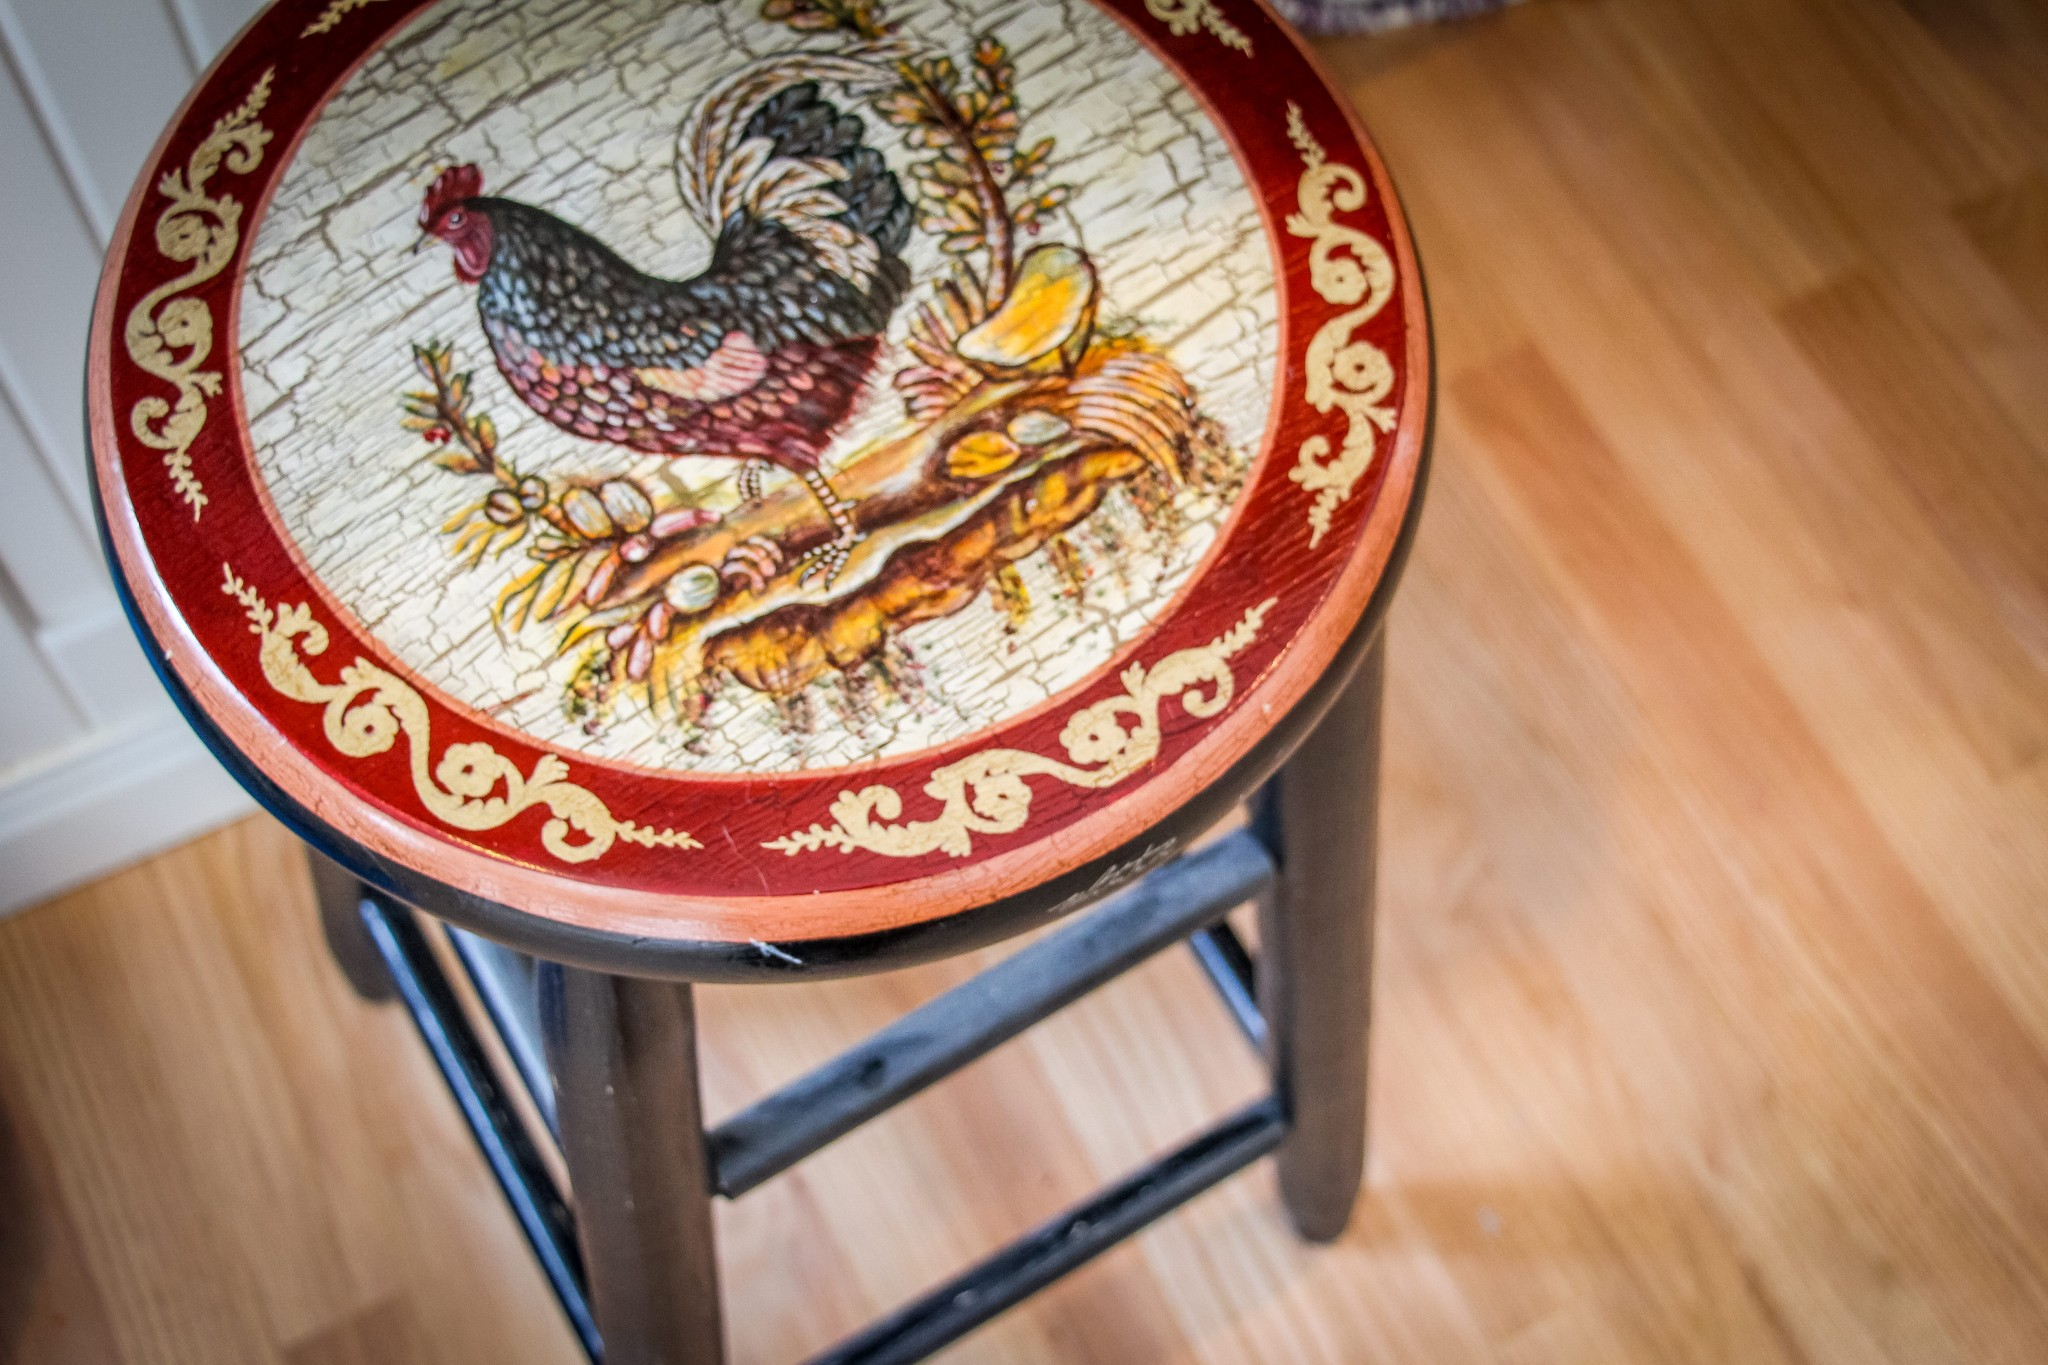 Country style stool with a hand painted rooster on the seat.